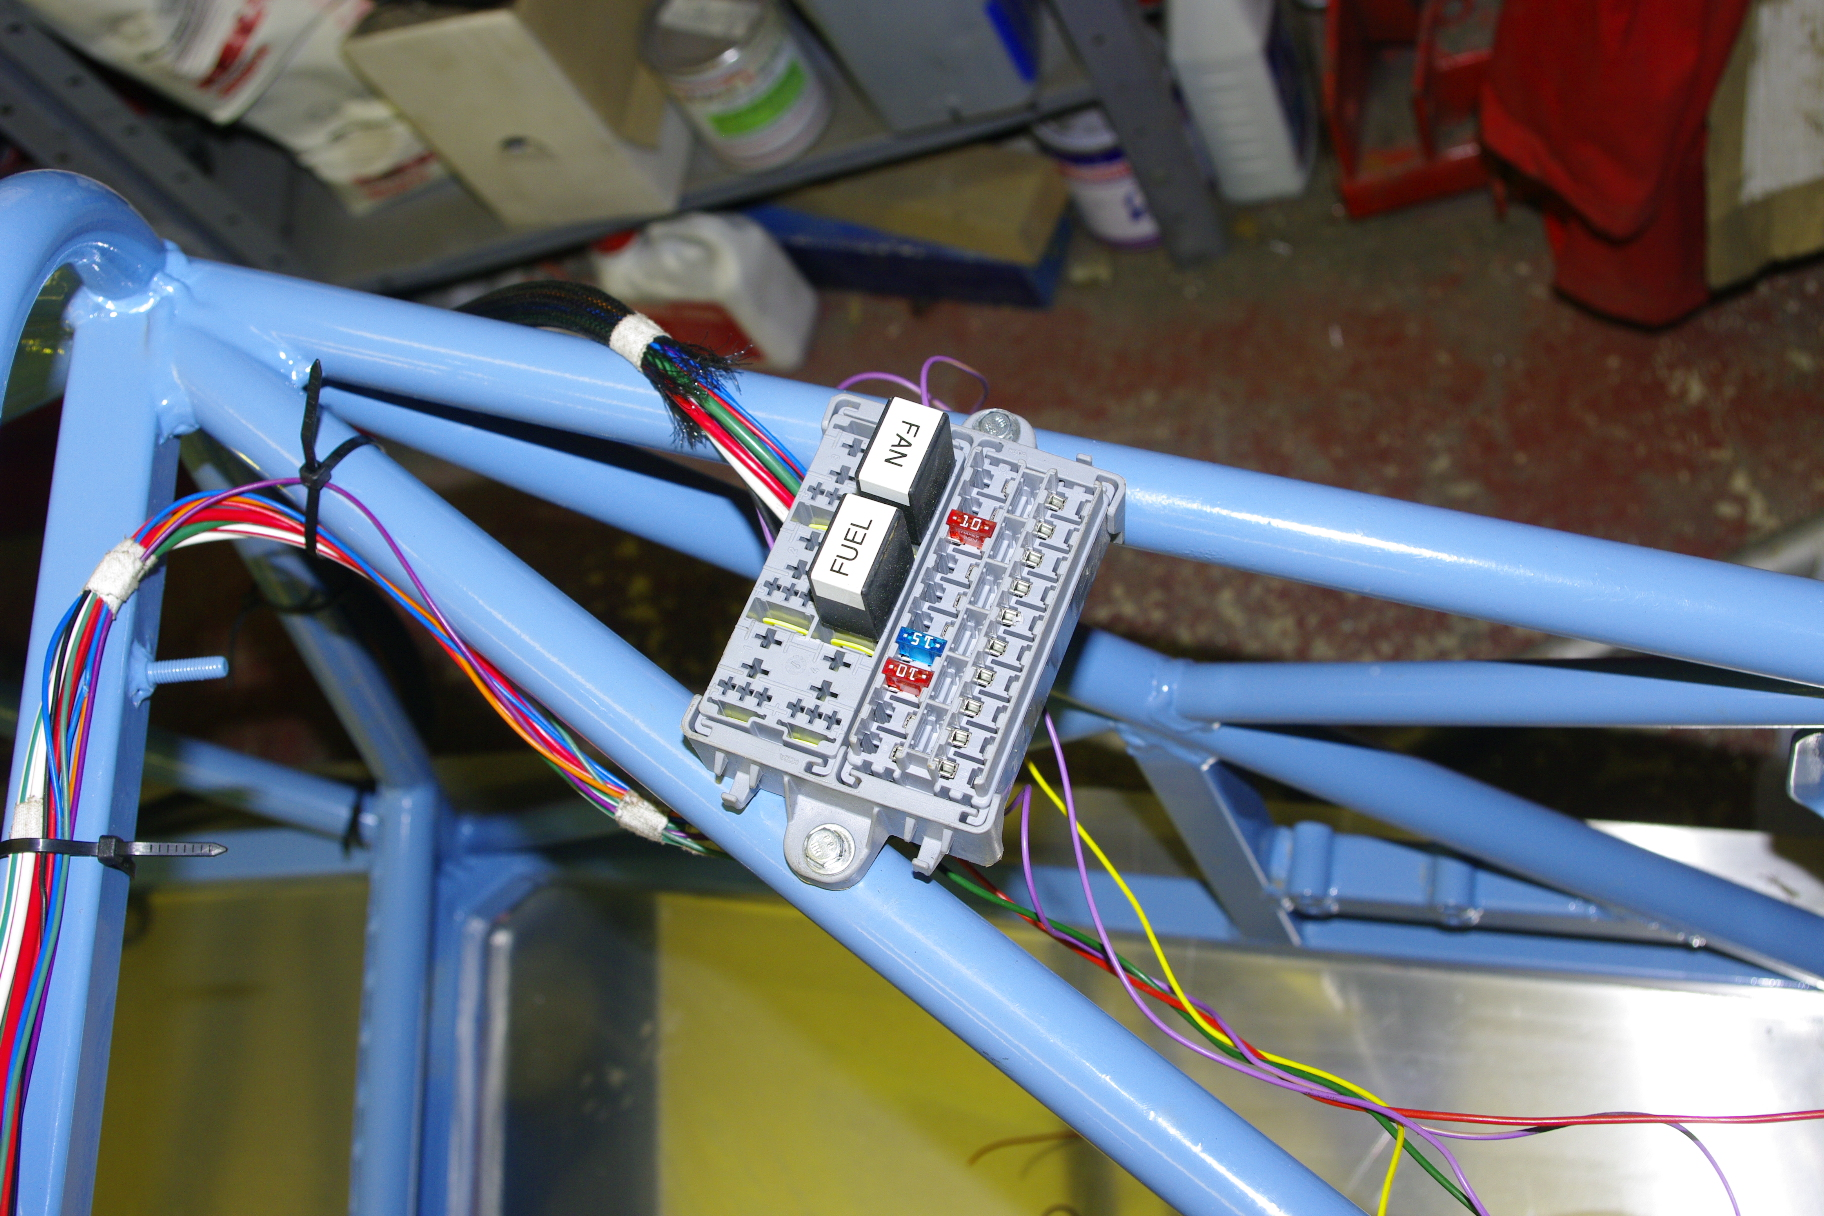 Rgb Racer Motor Racing For Mere Mortals In 750 Club Further Capping Casing And Wiring Also Denso Tape On Fax Cable So